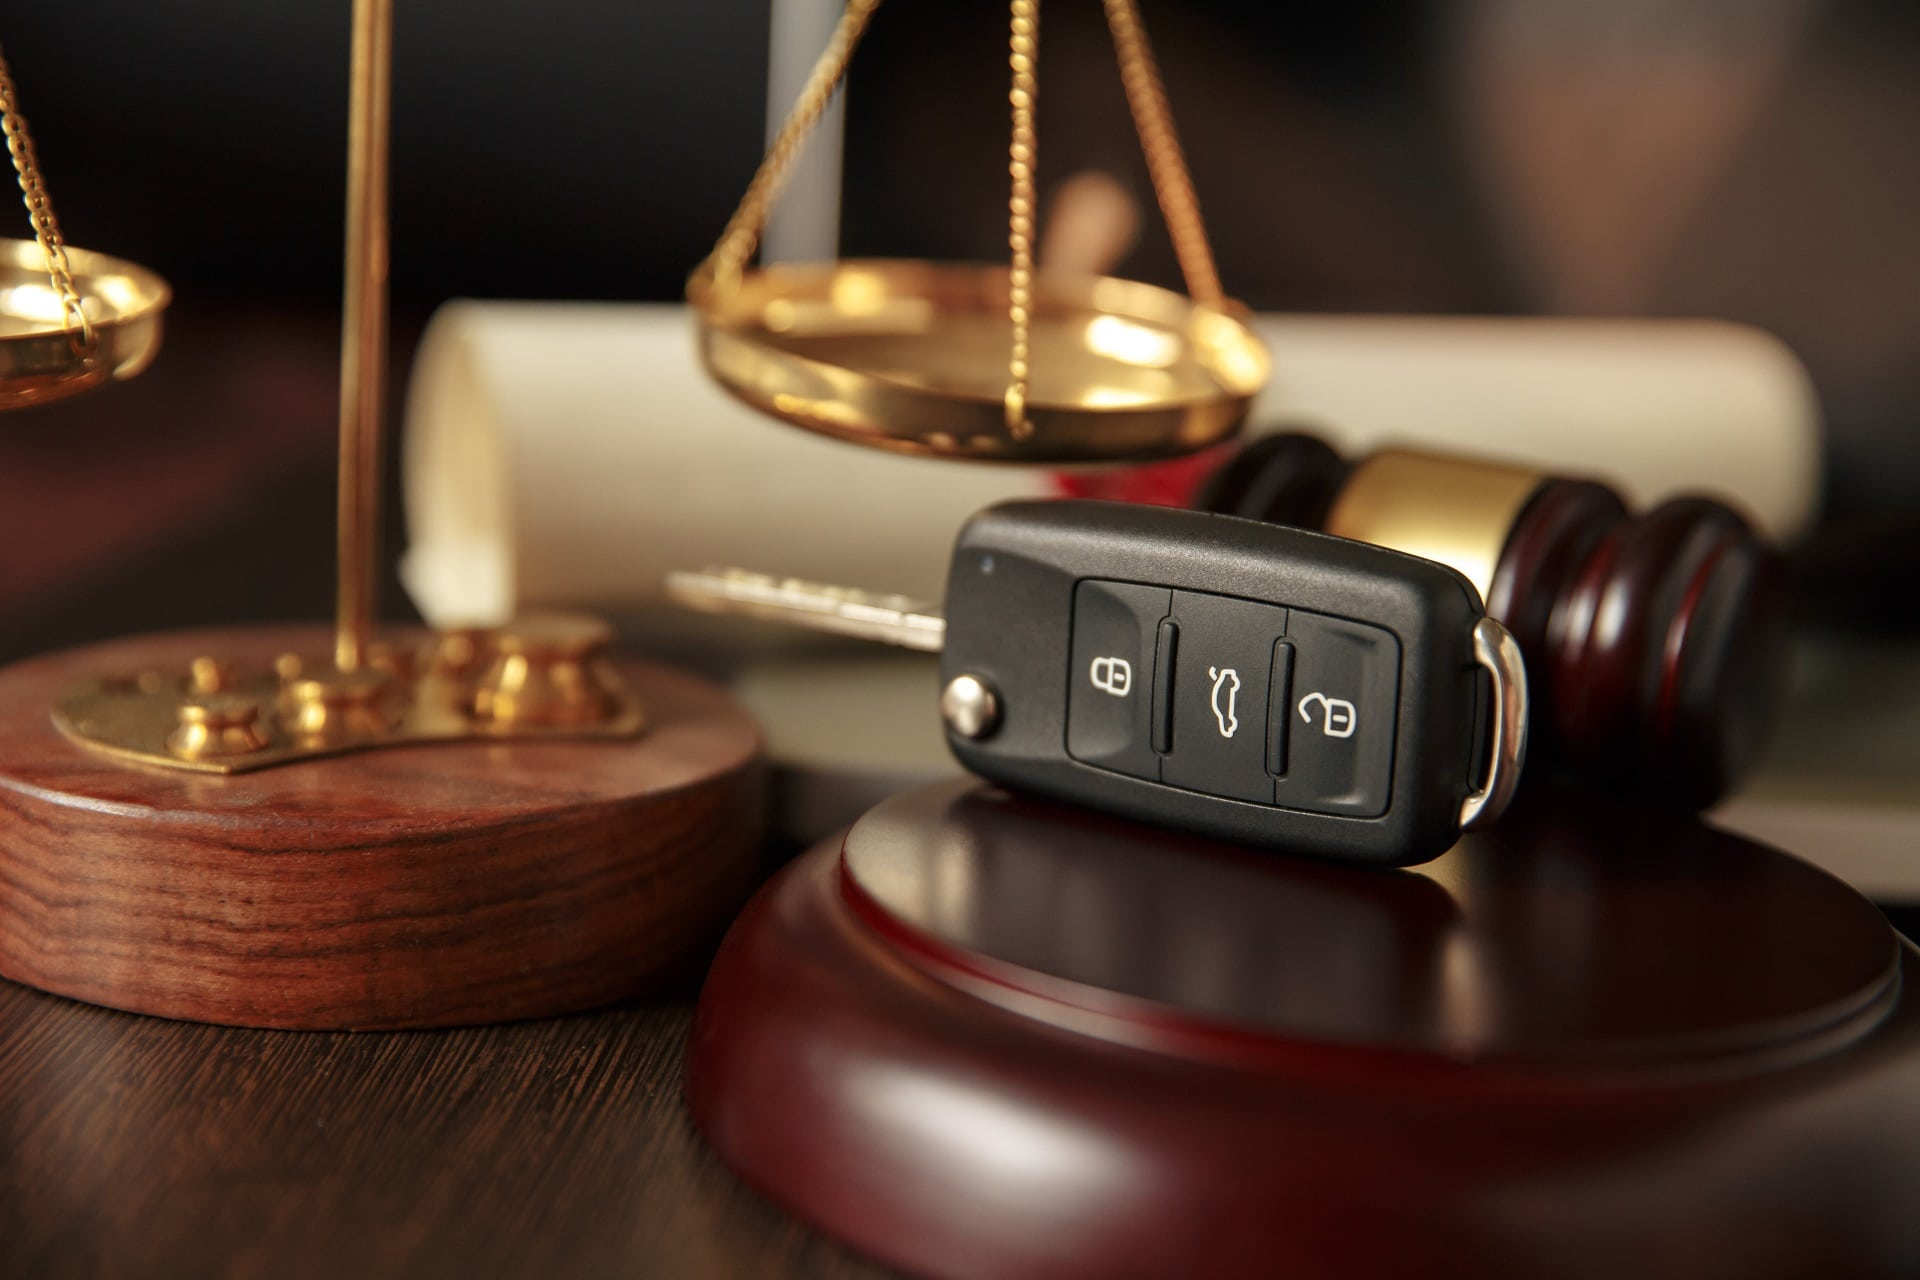 Car keys sitting atop a wooden referee, next to a gavel and the scales of justice